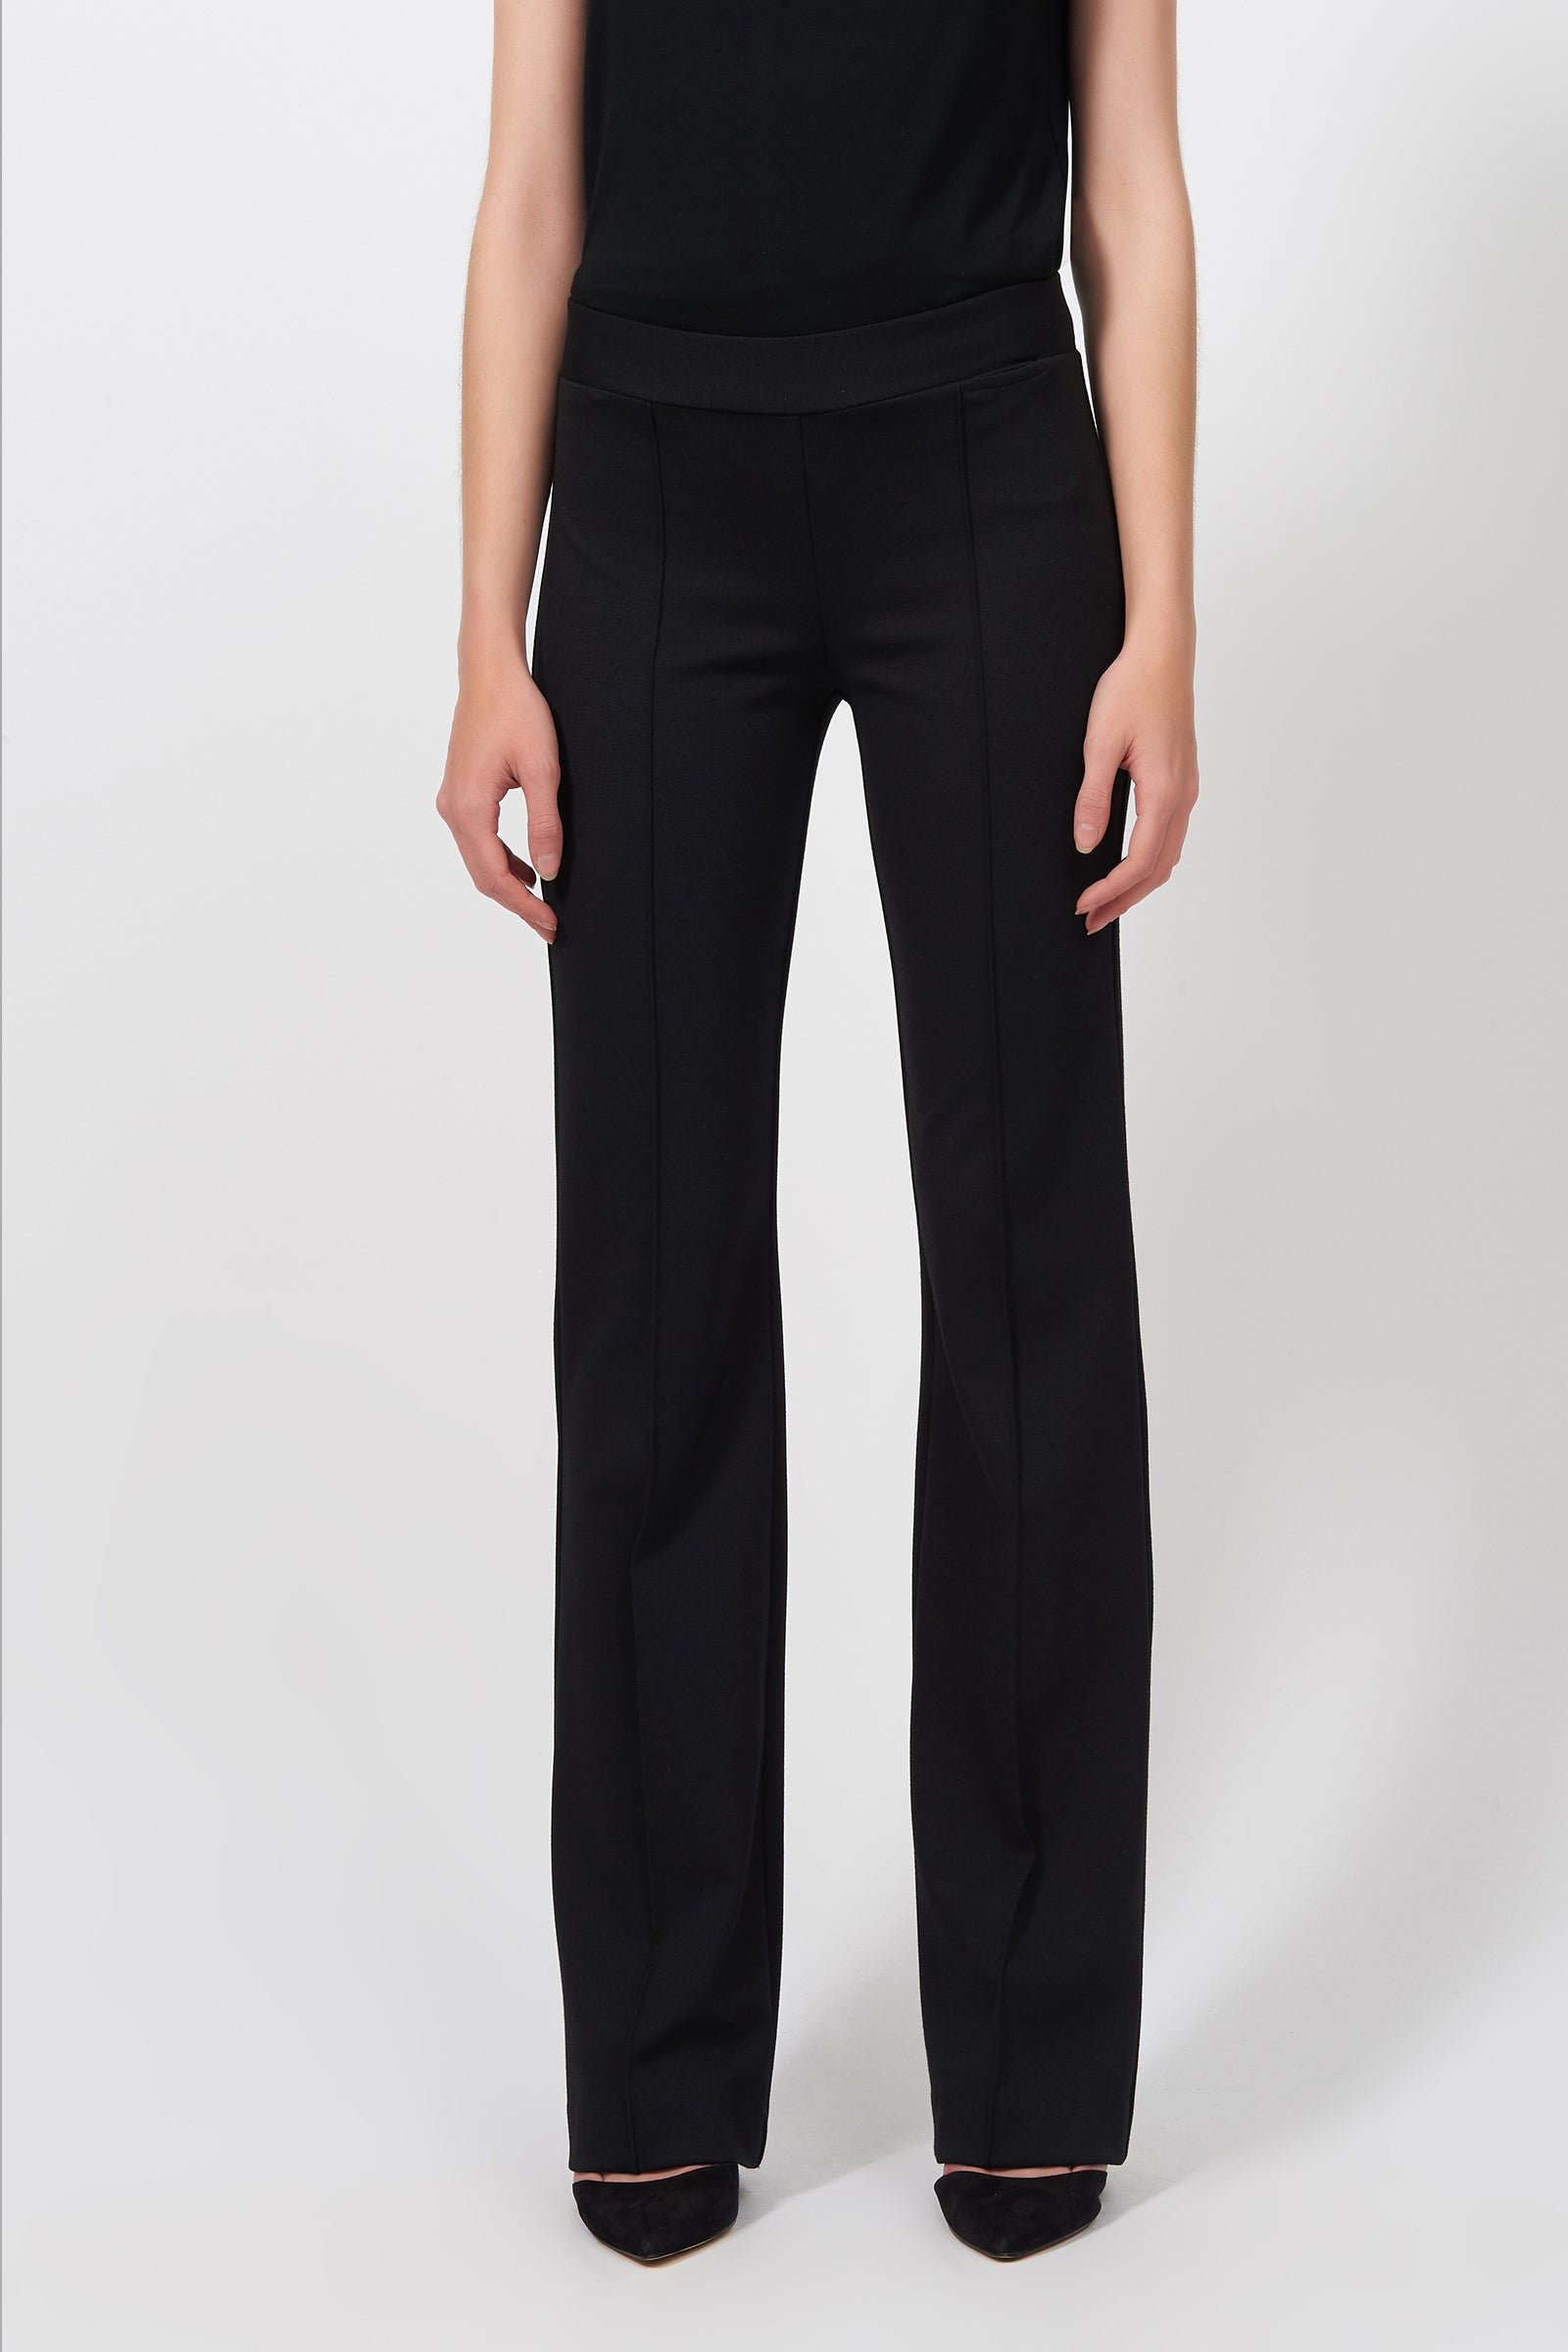 Kal Rieman Pintuck Ponte Column Pant in Black on Model Front View